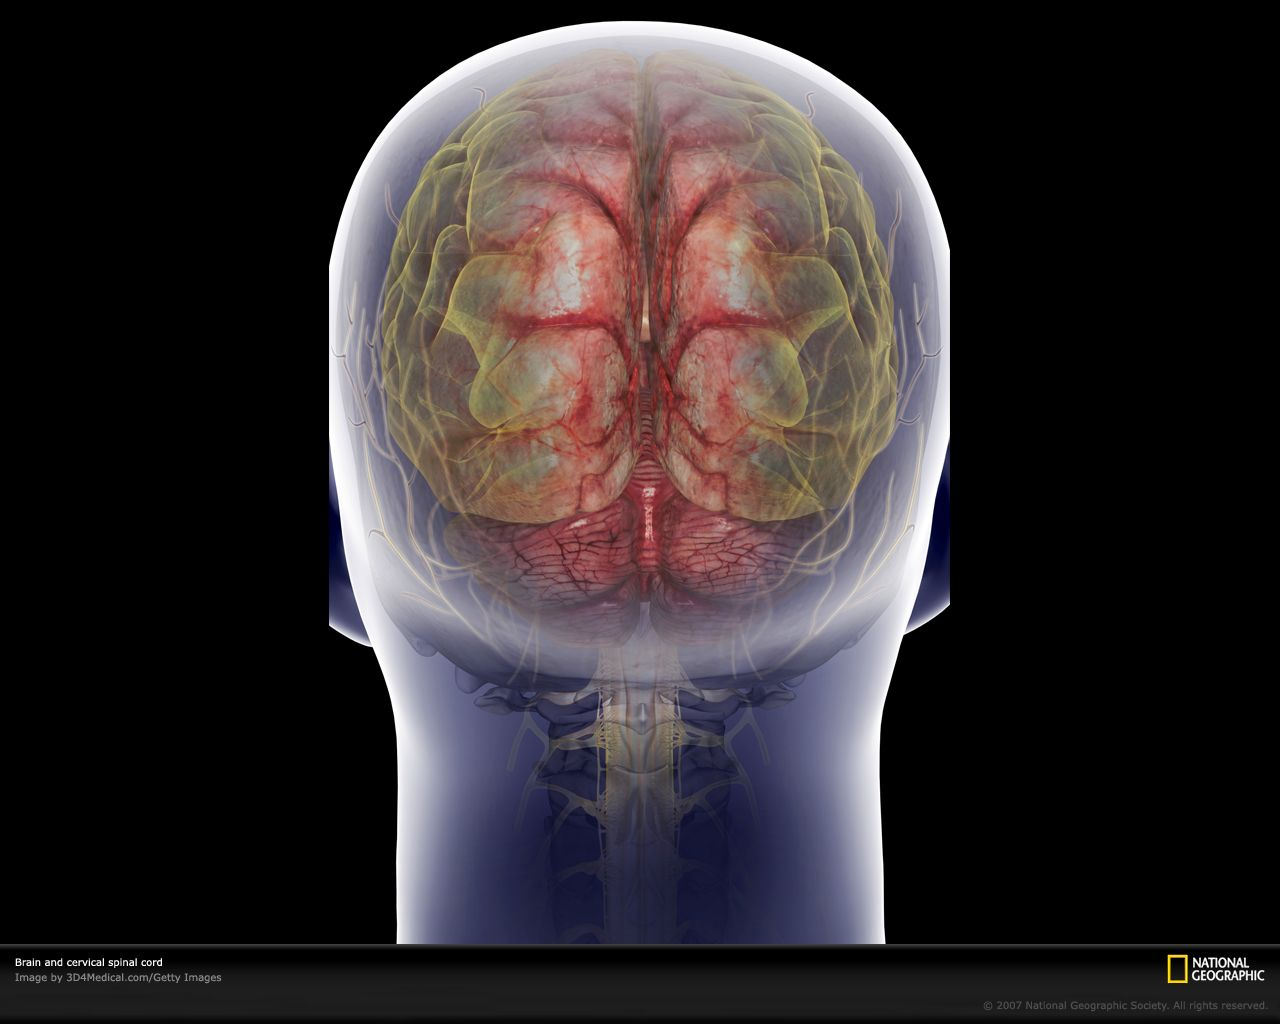 Rear view of the brain and cervical spinal cord - Image by ...